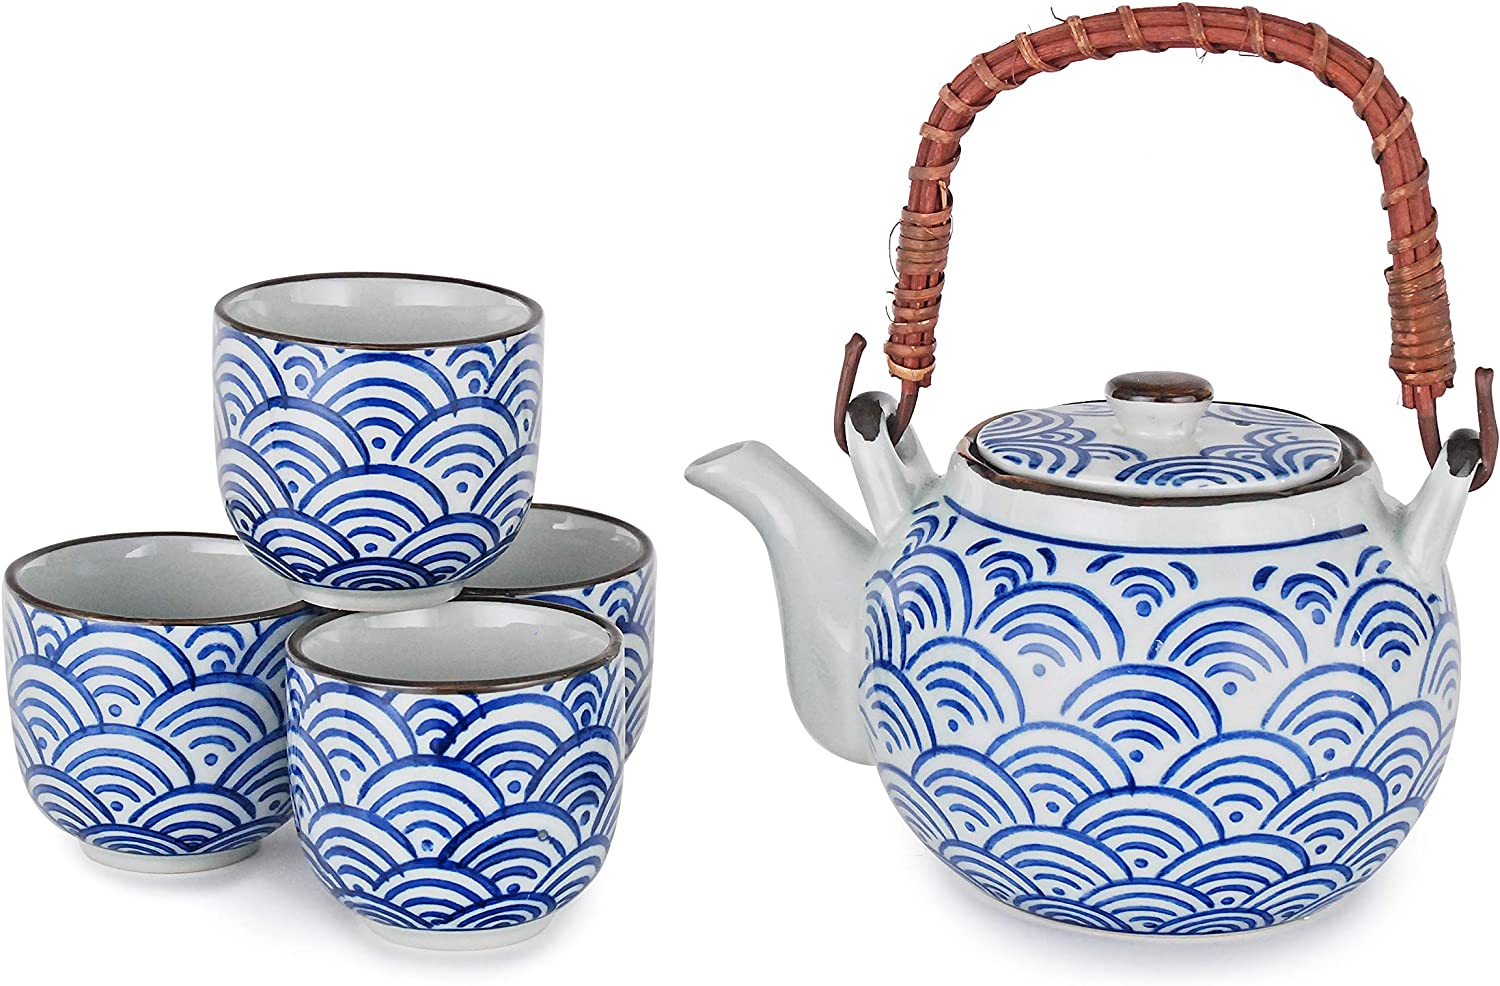 Hinomaru Collection Japanese Style Tea Set Porcelain 22 fl oz Teapot with Rattan Handle and 4 Tea Cups Stainless Steel Strainer (Seigaiha Waves)